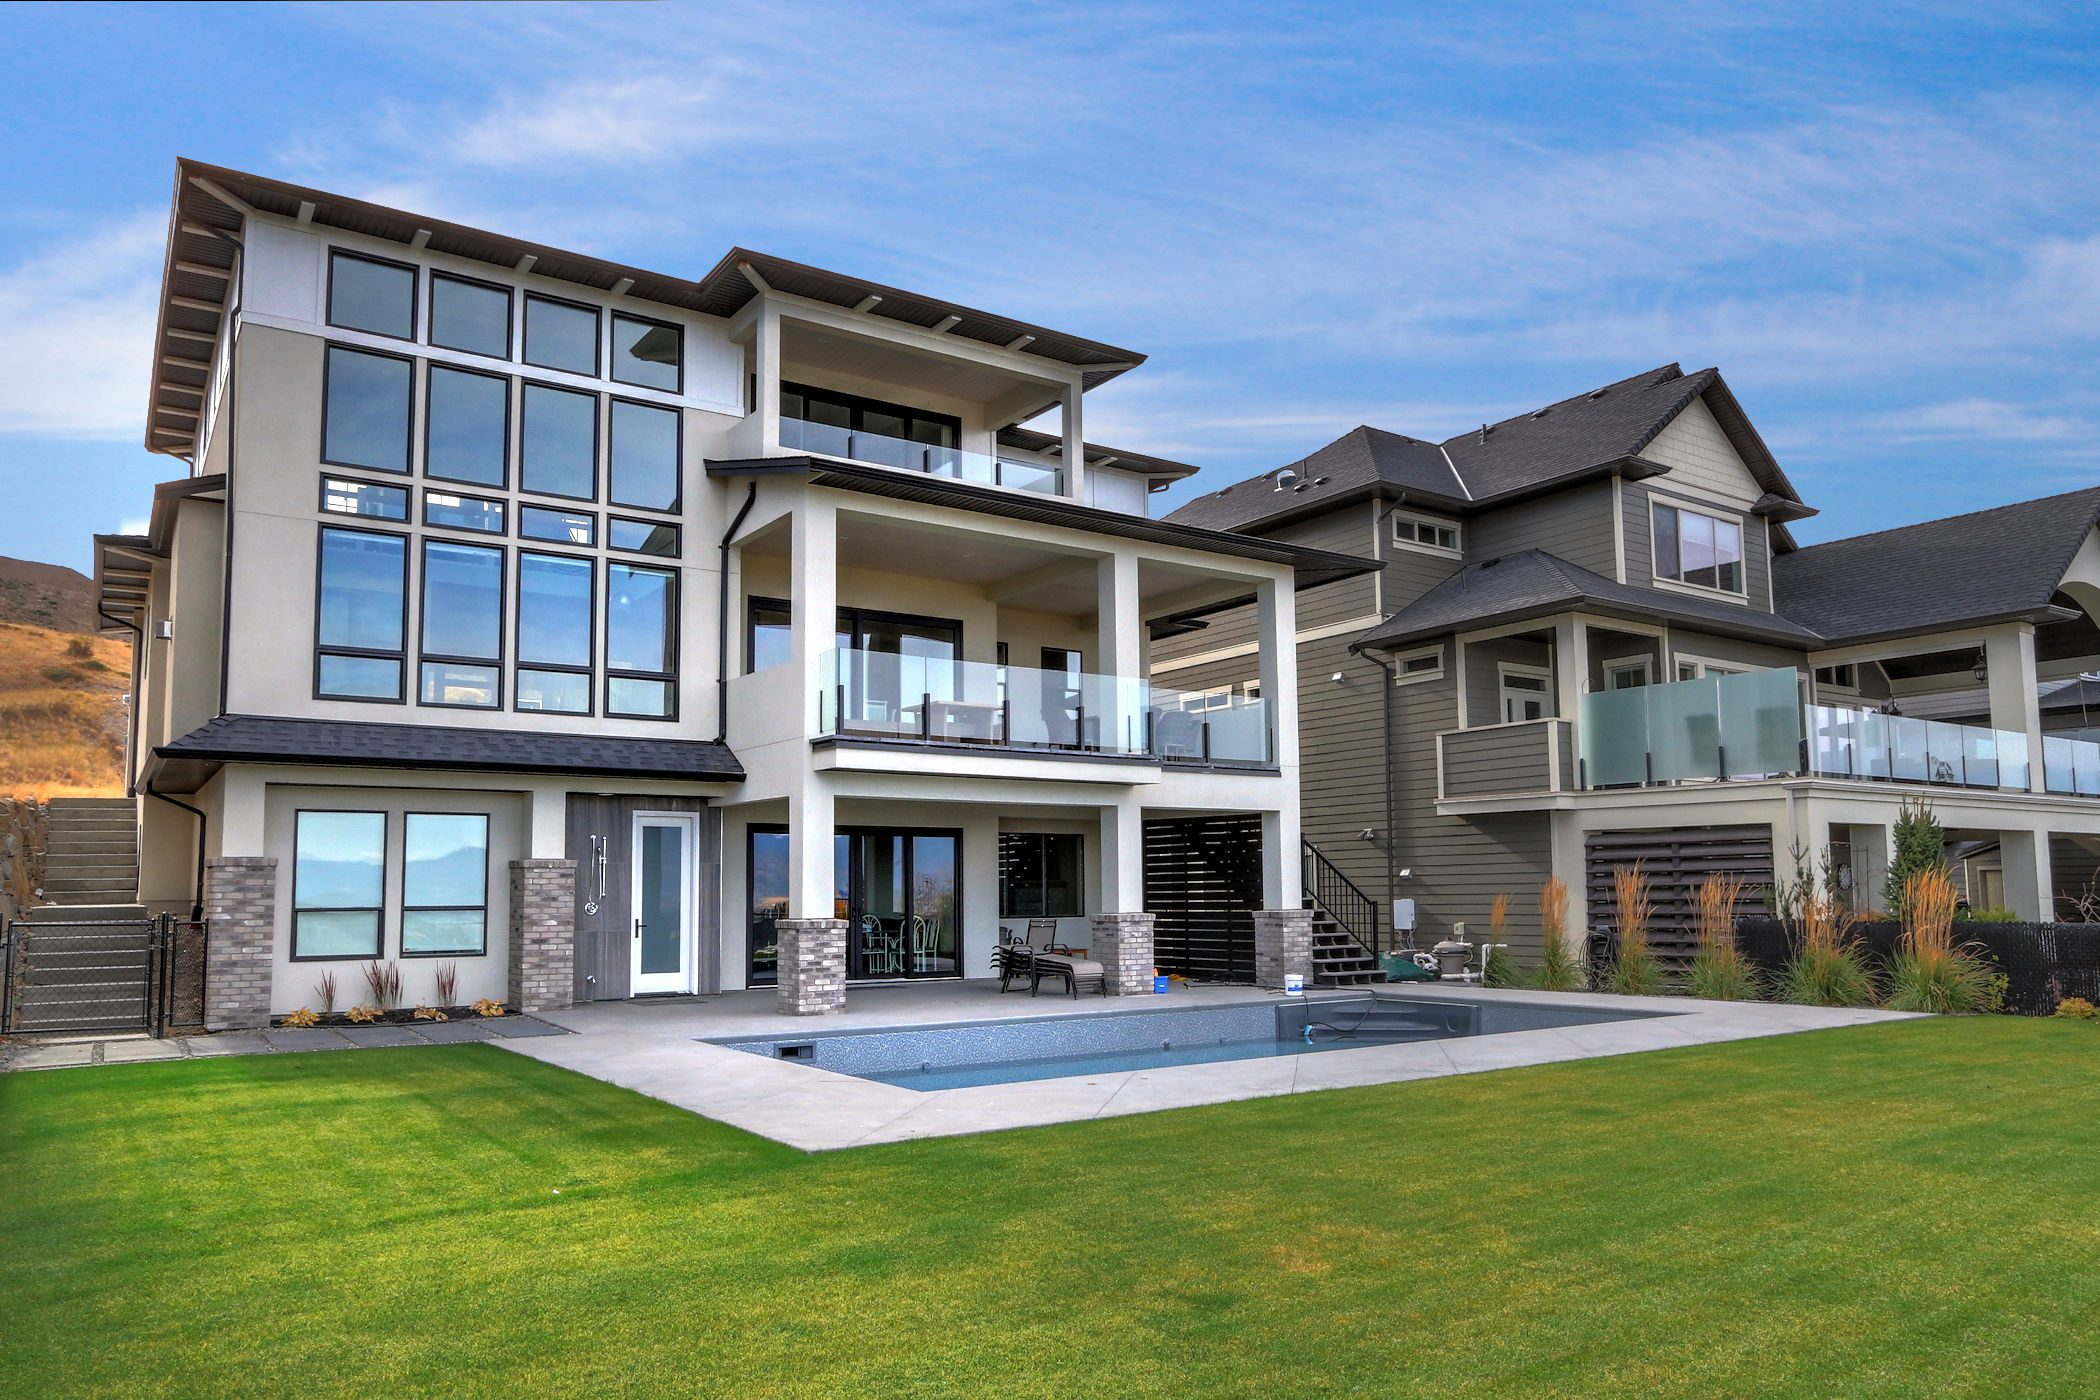 Stark Homes Custom Home exterior view showing multiple decks and an in-ground pool nd new build home warranty